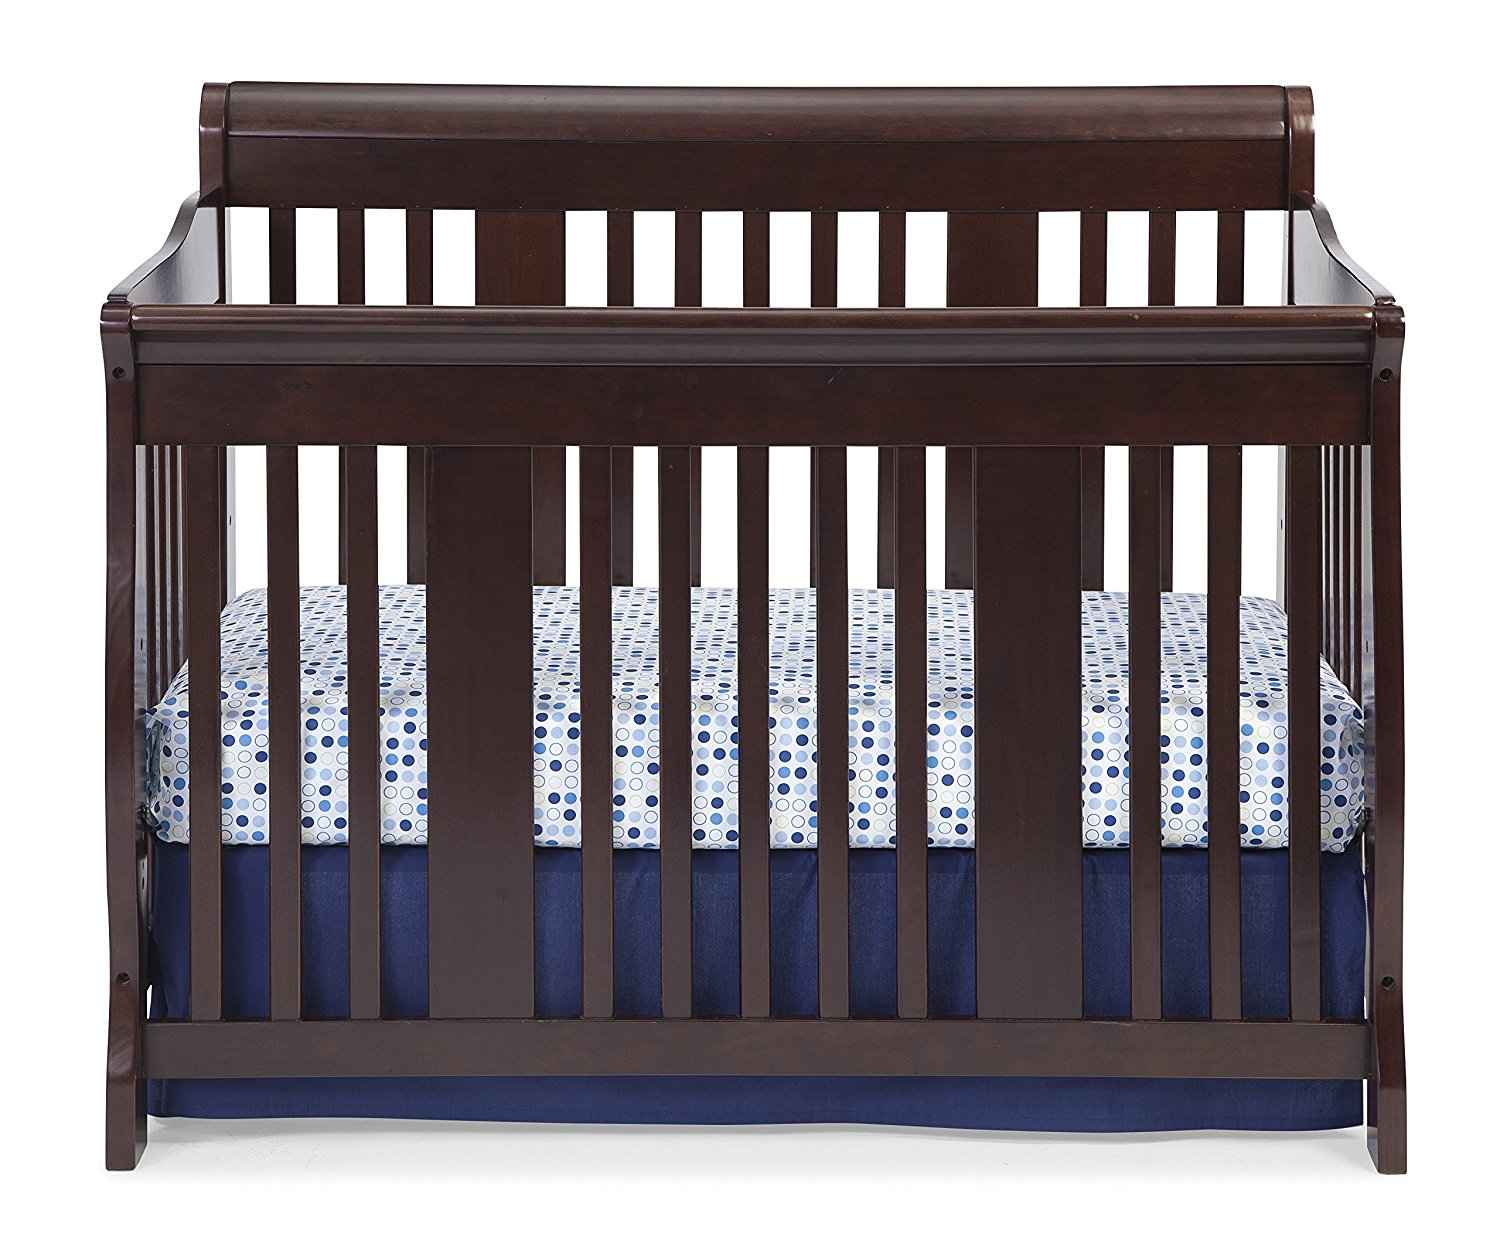 Davinci Cribs Recall | Mini Crib Walmart | Bassett Baby Crib  sc 1 st  Ondeckwithlucy.com & Furniture: Nursery Furniture Collections | Bassett Baby Crib ...